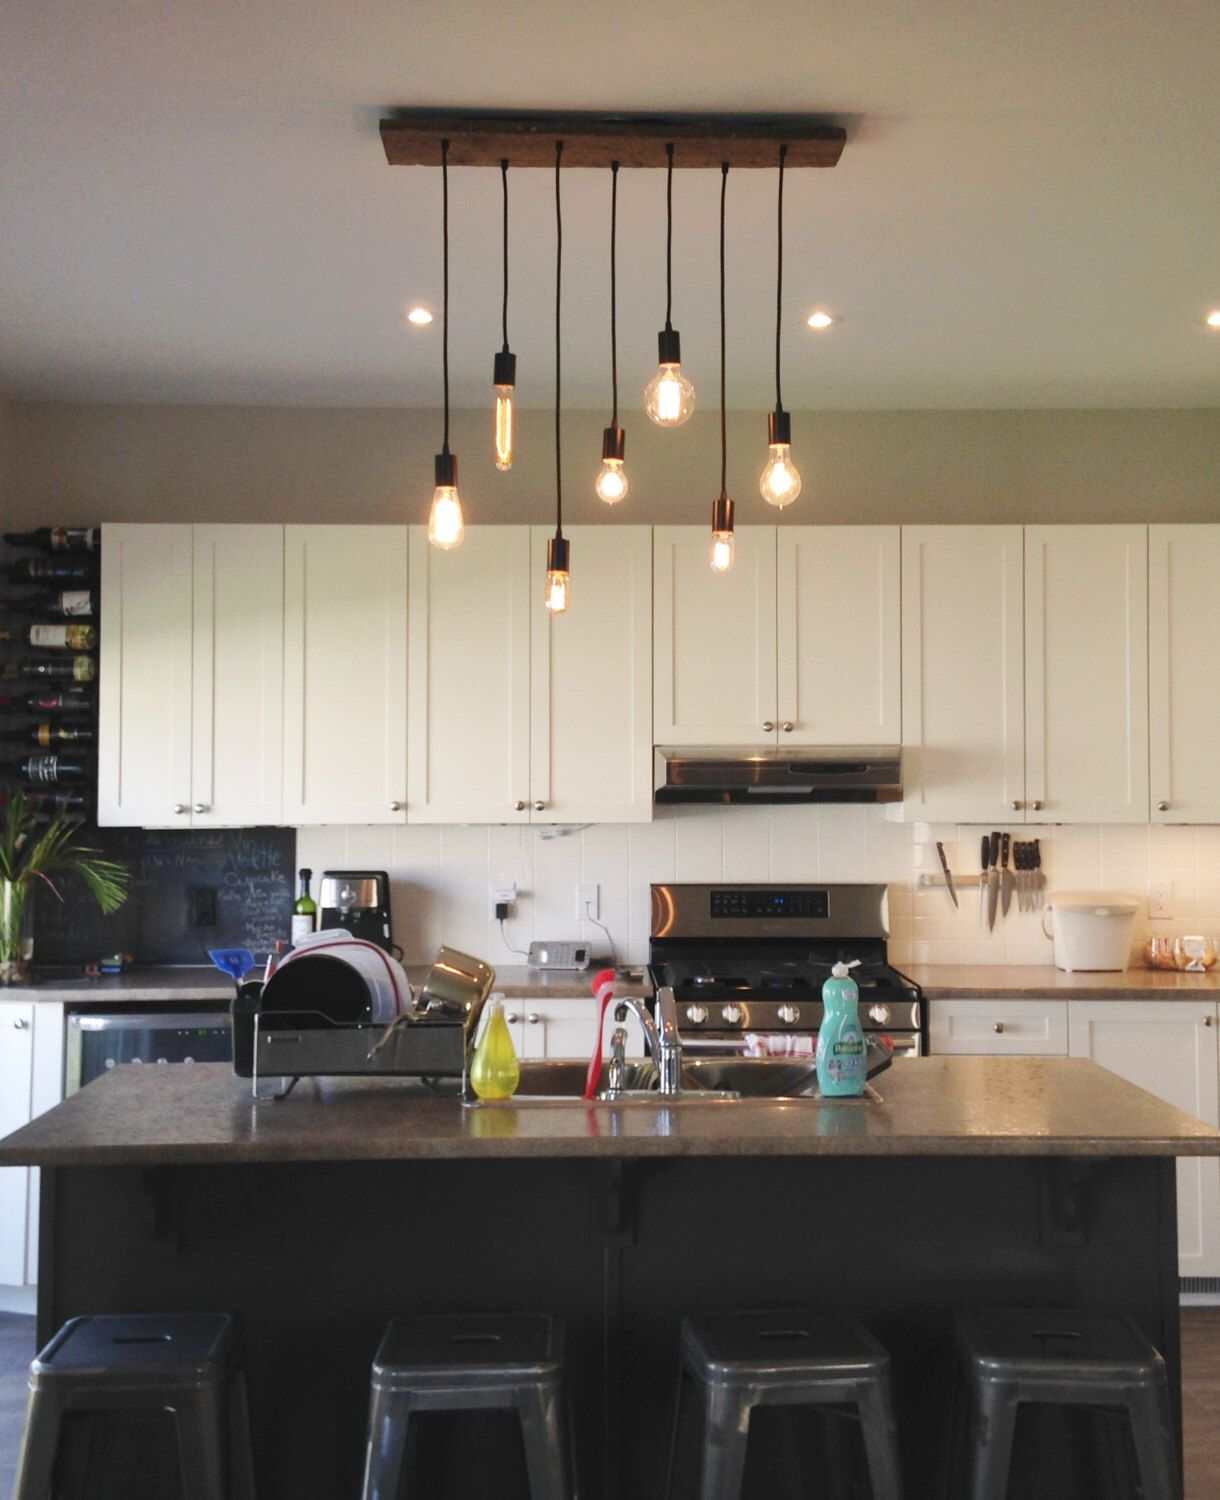 Kitchen Lighting - Wood Chandelier with Pendant Lights - Modern Wood ...